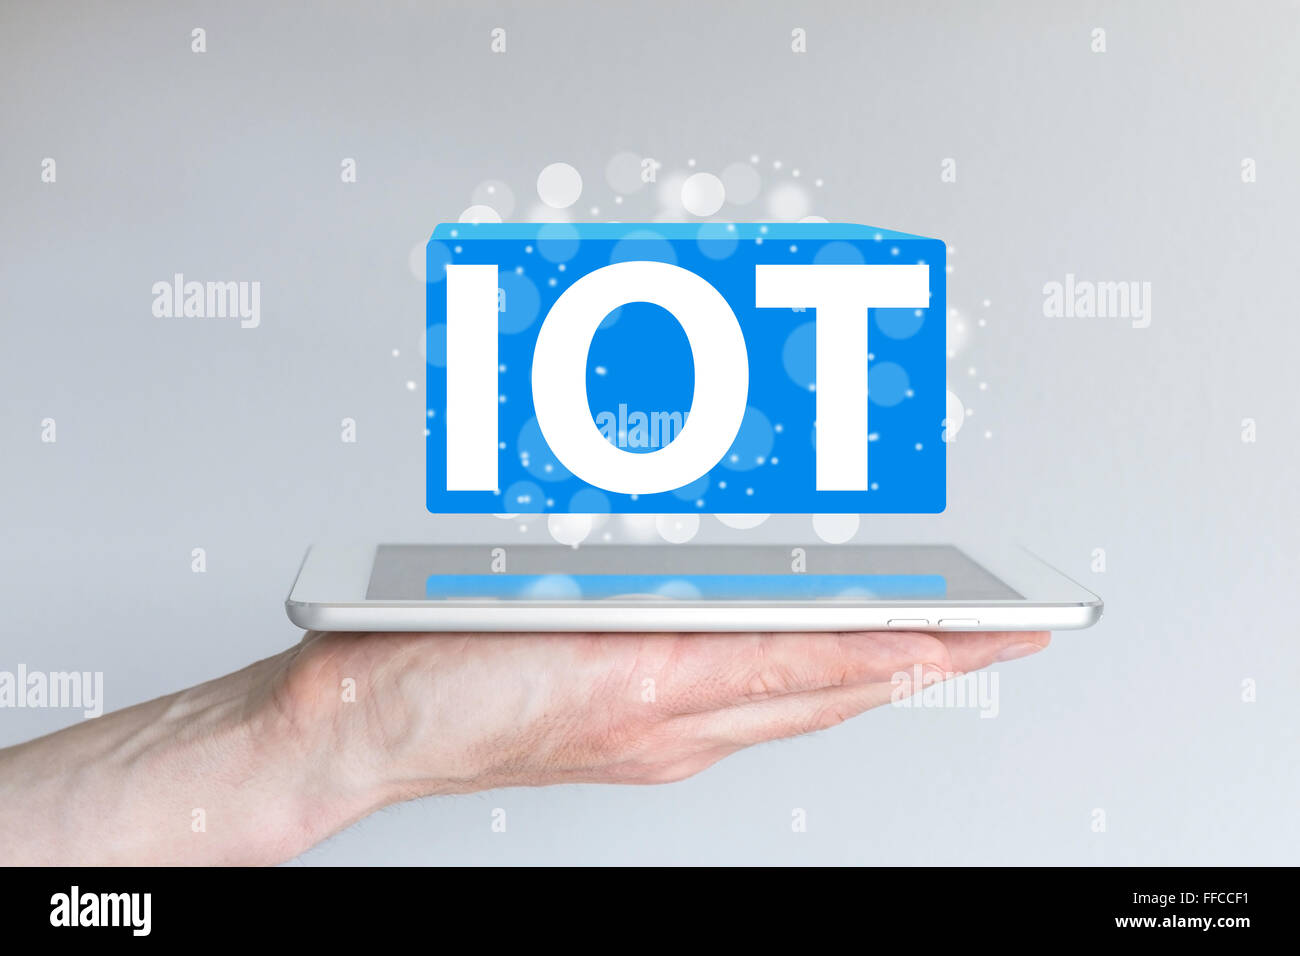 IOT (internet of things) concept and information technology background. Hand holding modern smart phone or tablet - Stock Image